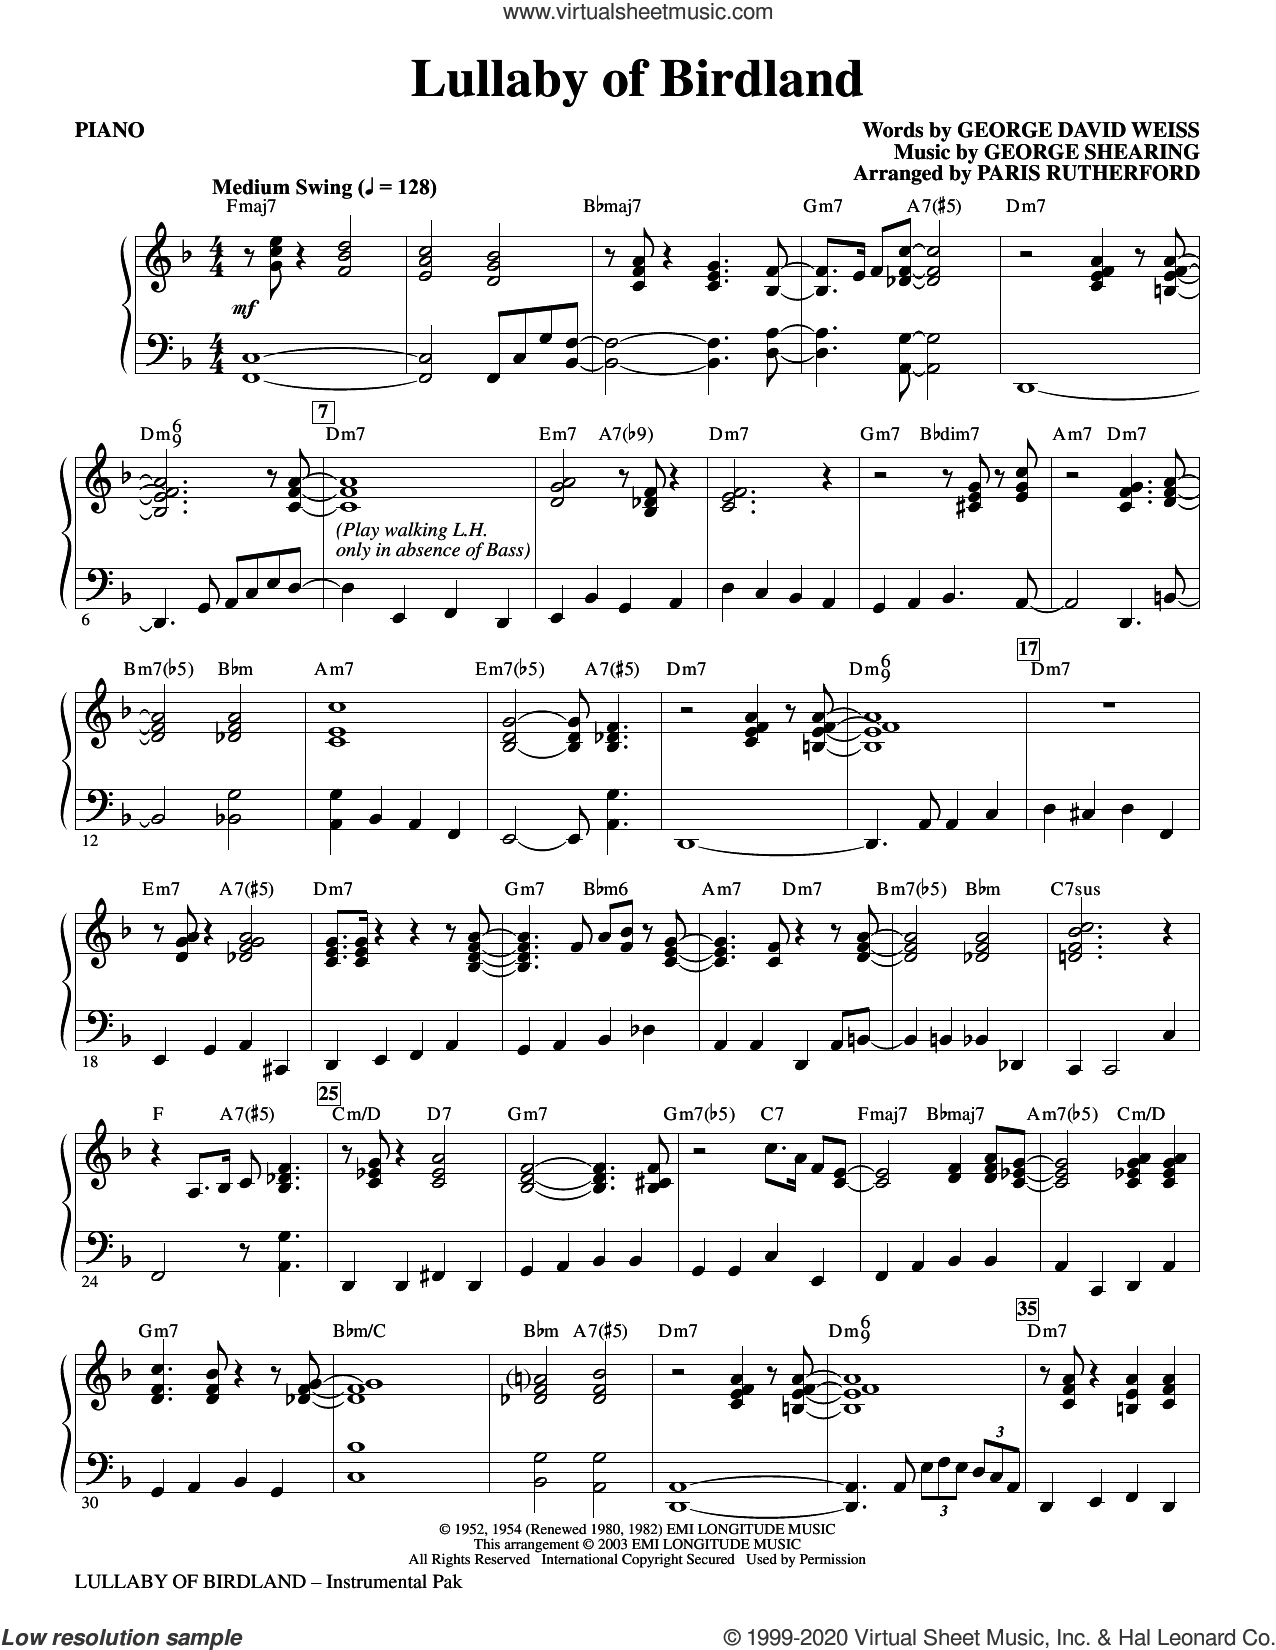 Lullaby Of Birdland (arr. Paris Rutherford) (complete set of parts) sheet music for orchestra/band (Rhythm) by George David Weiss and George Shearing, George David Weiss, George Shearing and Paris Rutherford, intermediate skill level